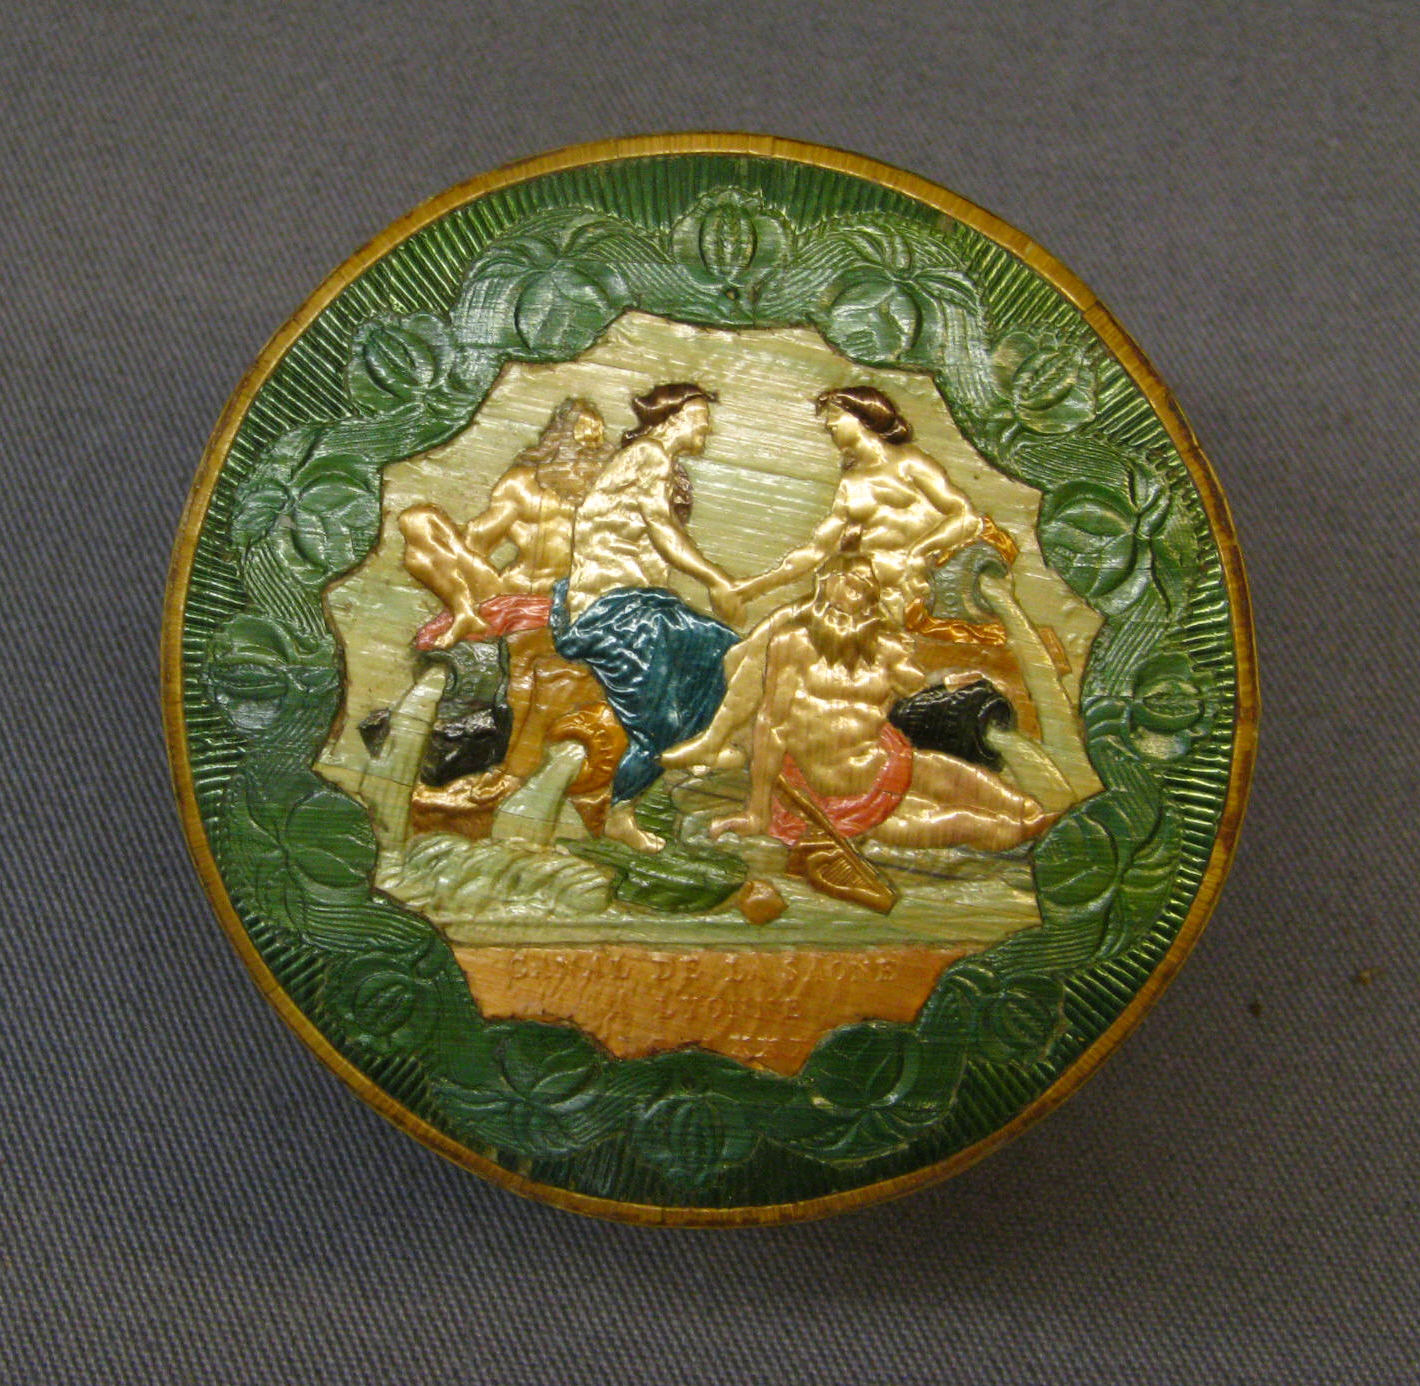 Embossed Toilet Box inner container signed CANAL DE LA SOANE, A LYONNE Courtesy Metropolitan Museum of Art NY, The Straw Shop